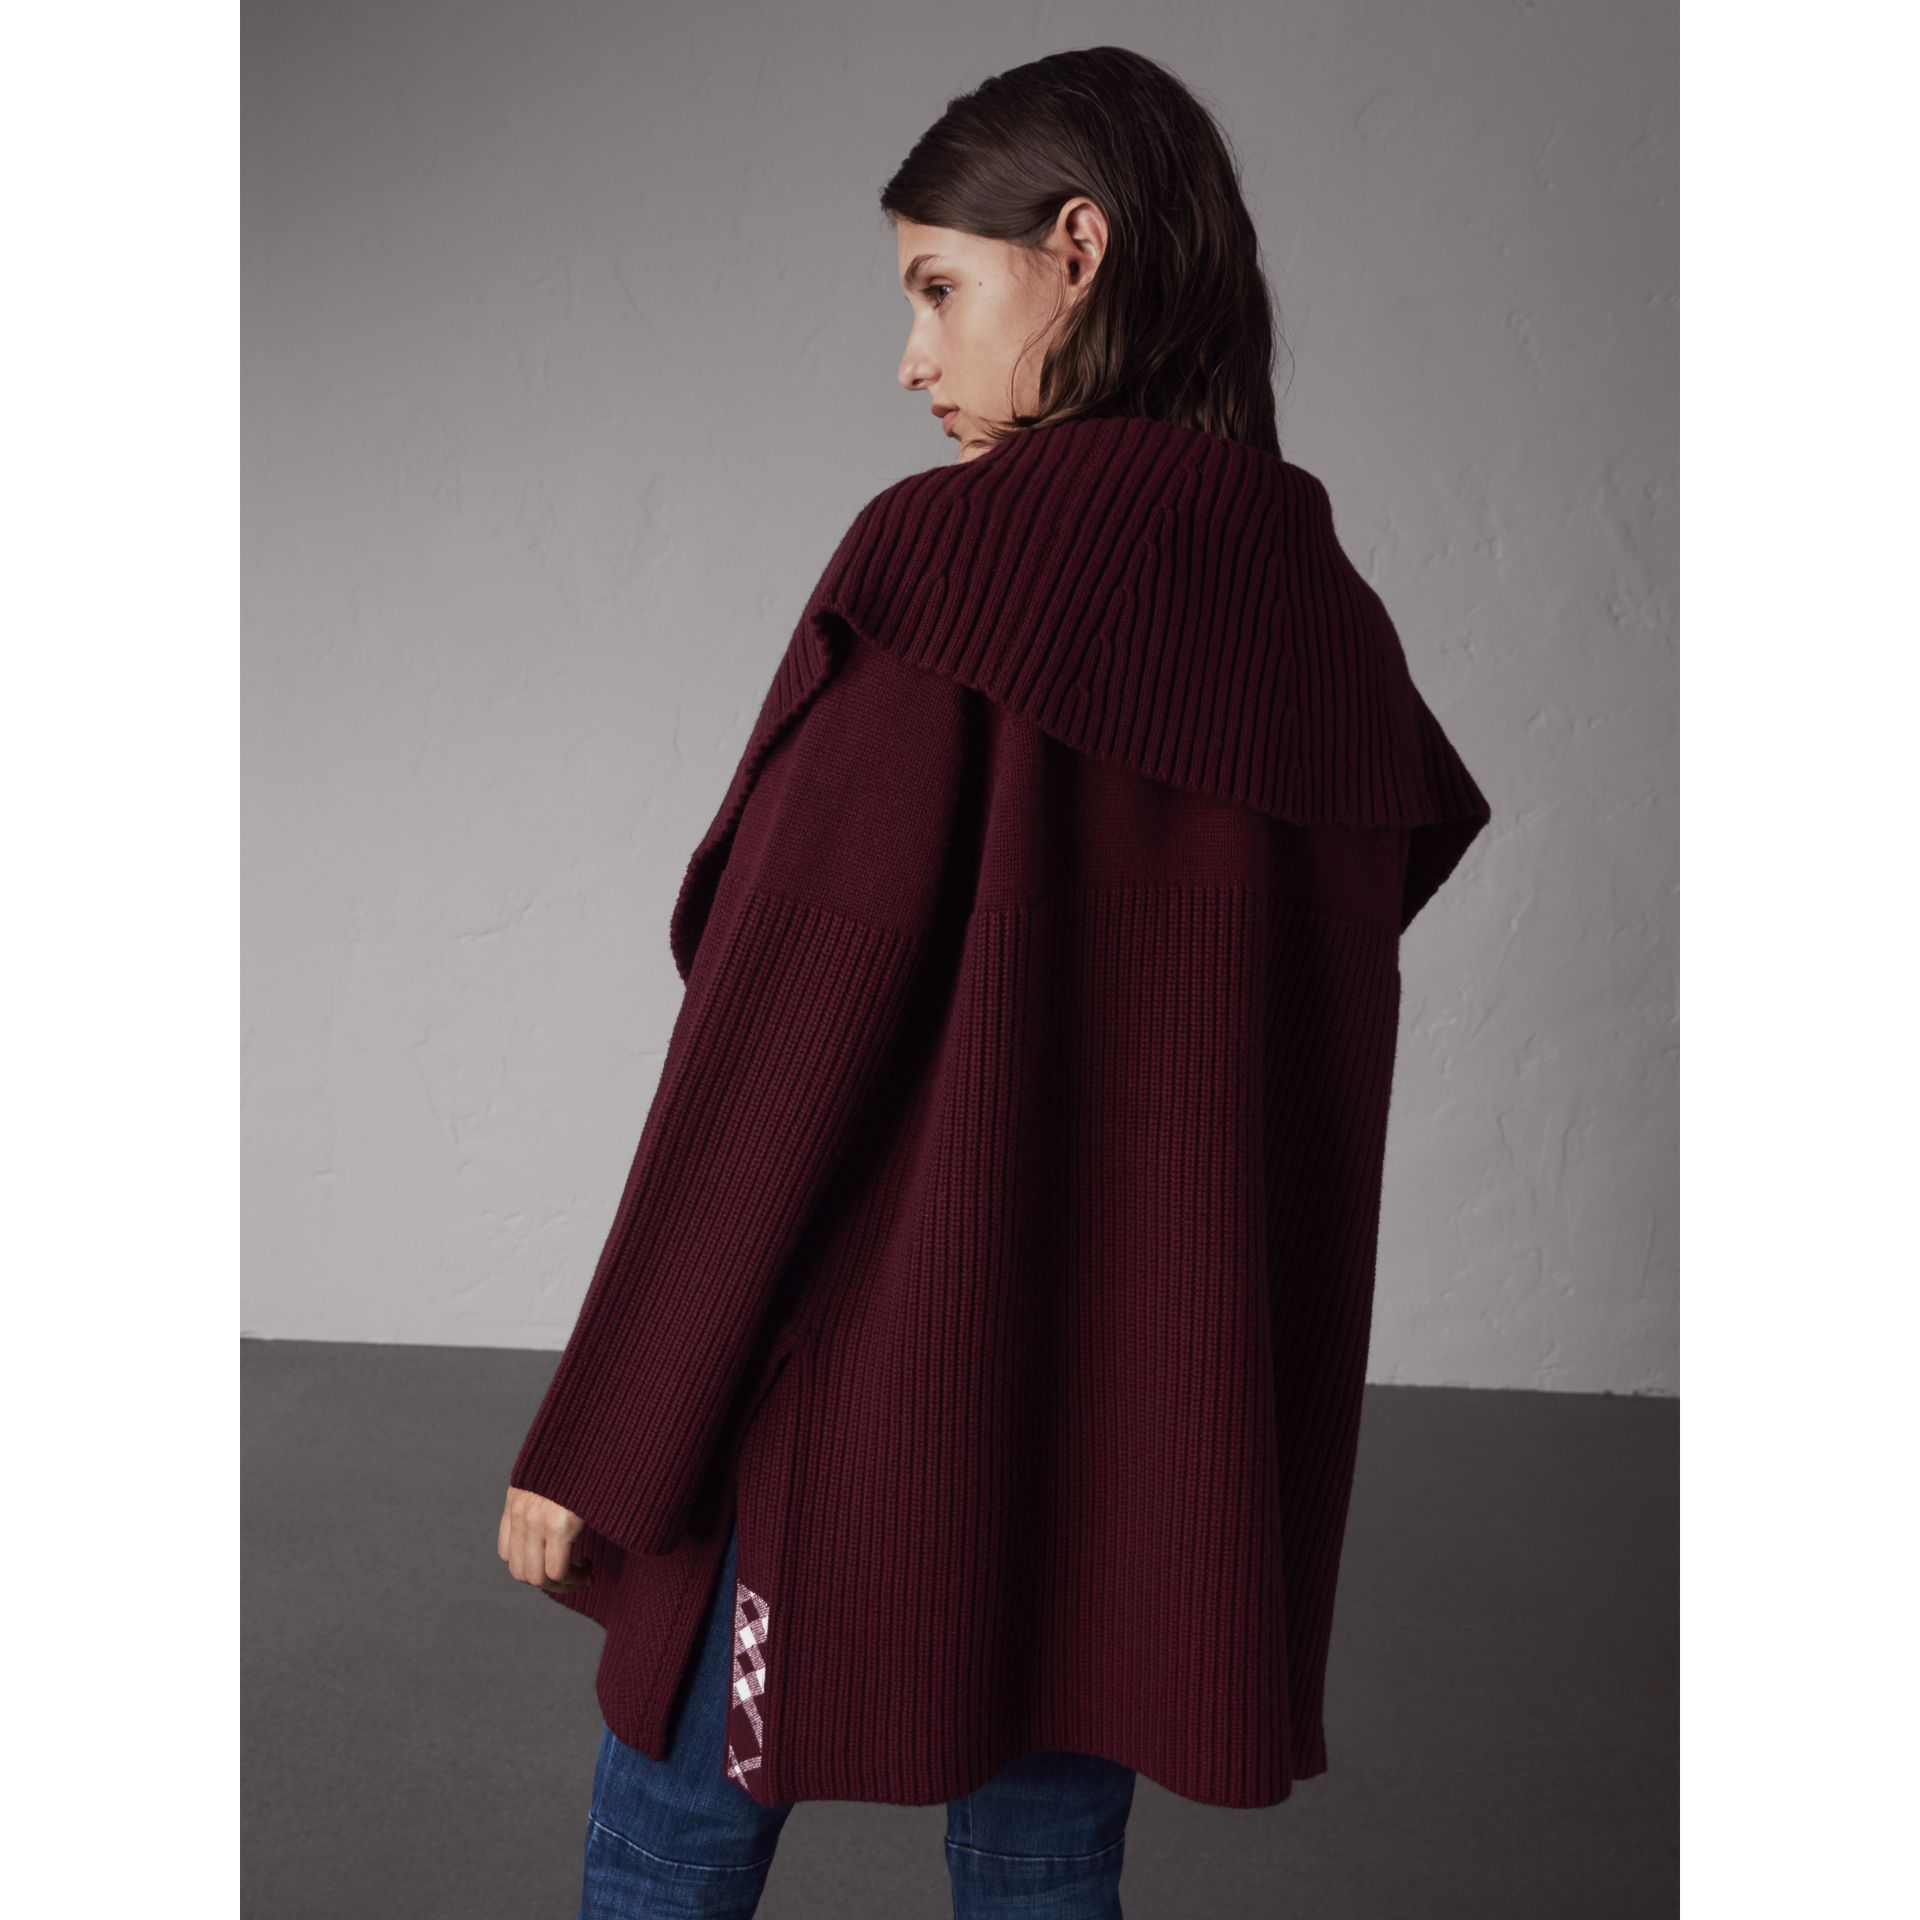 Ribbed Wool Cashmere Cardigan Coat in Burgundy - Women | Burberry - gallery image 2